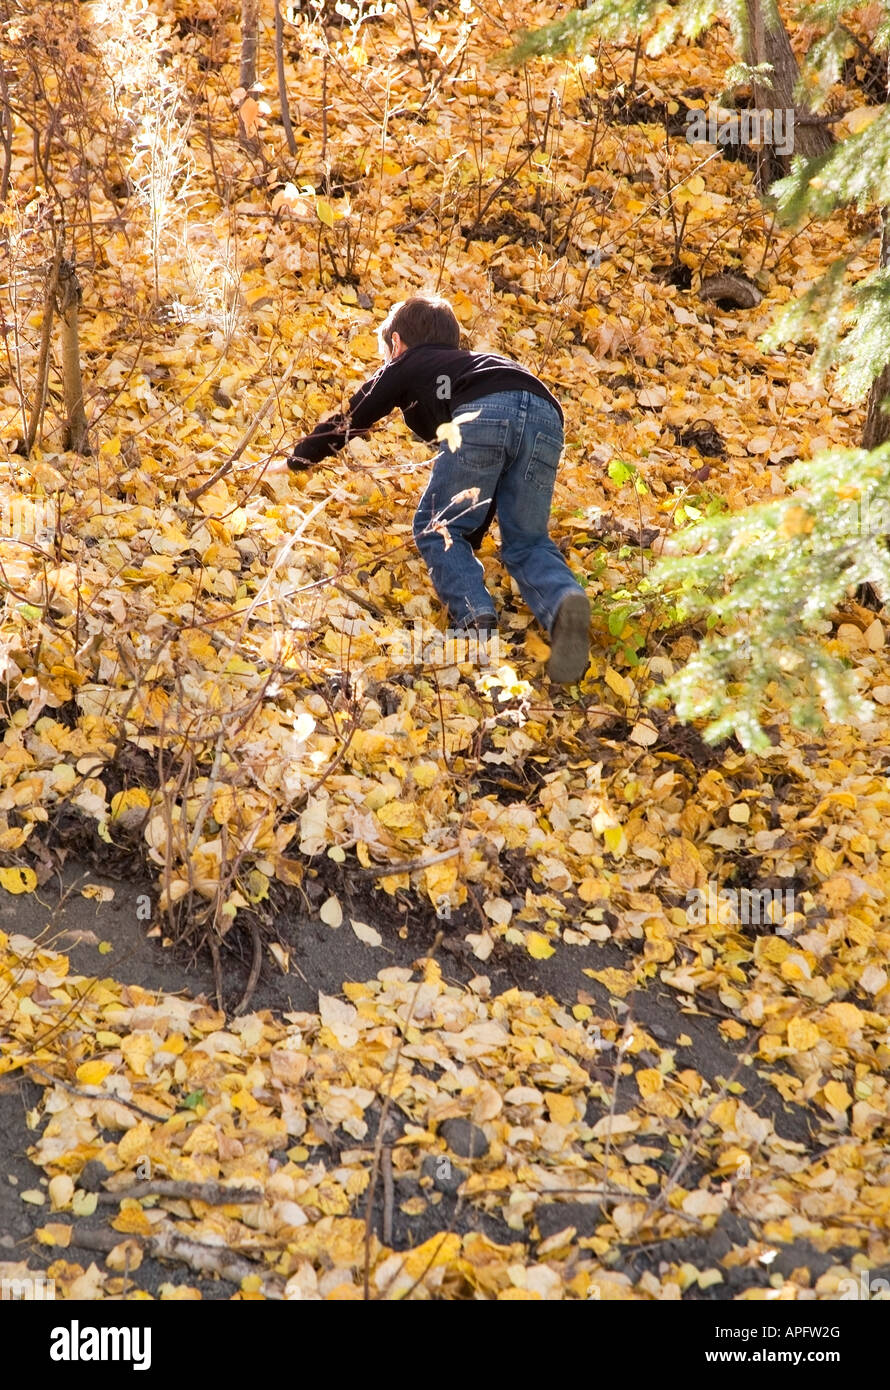 Boy climbing a steep hill in fall - Stock Image